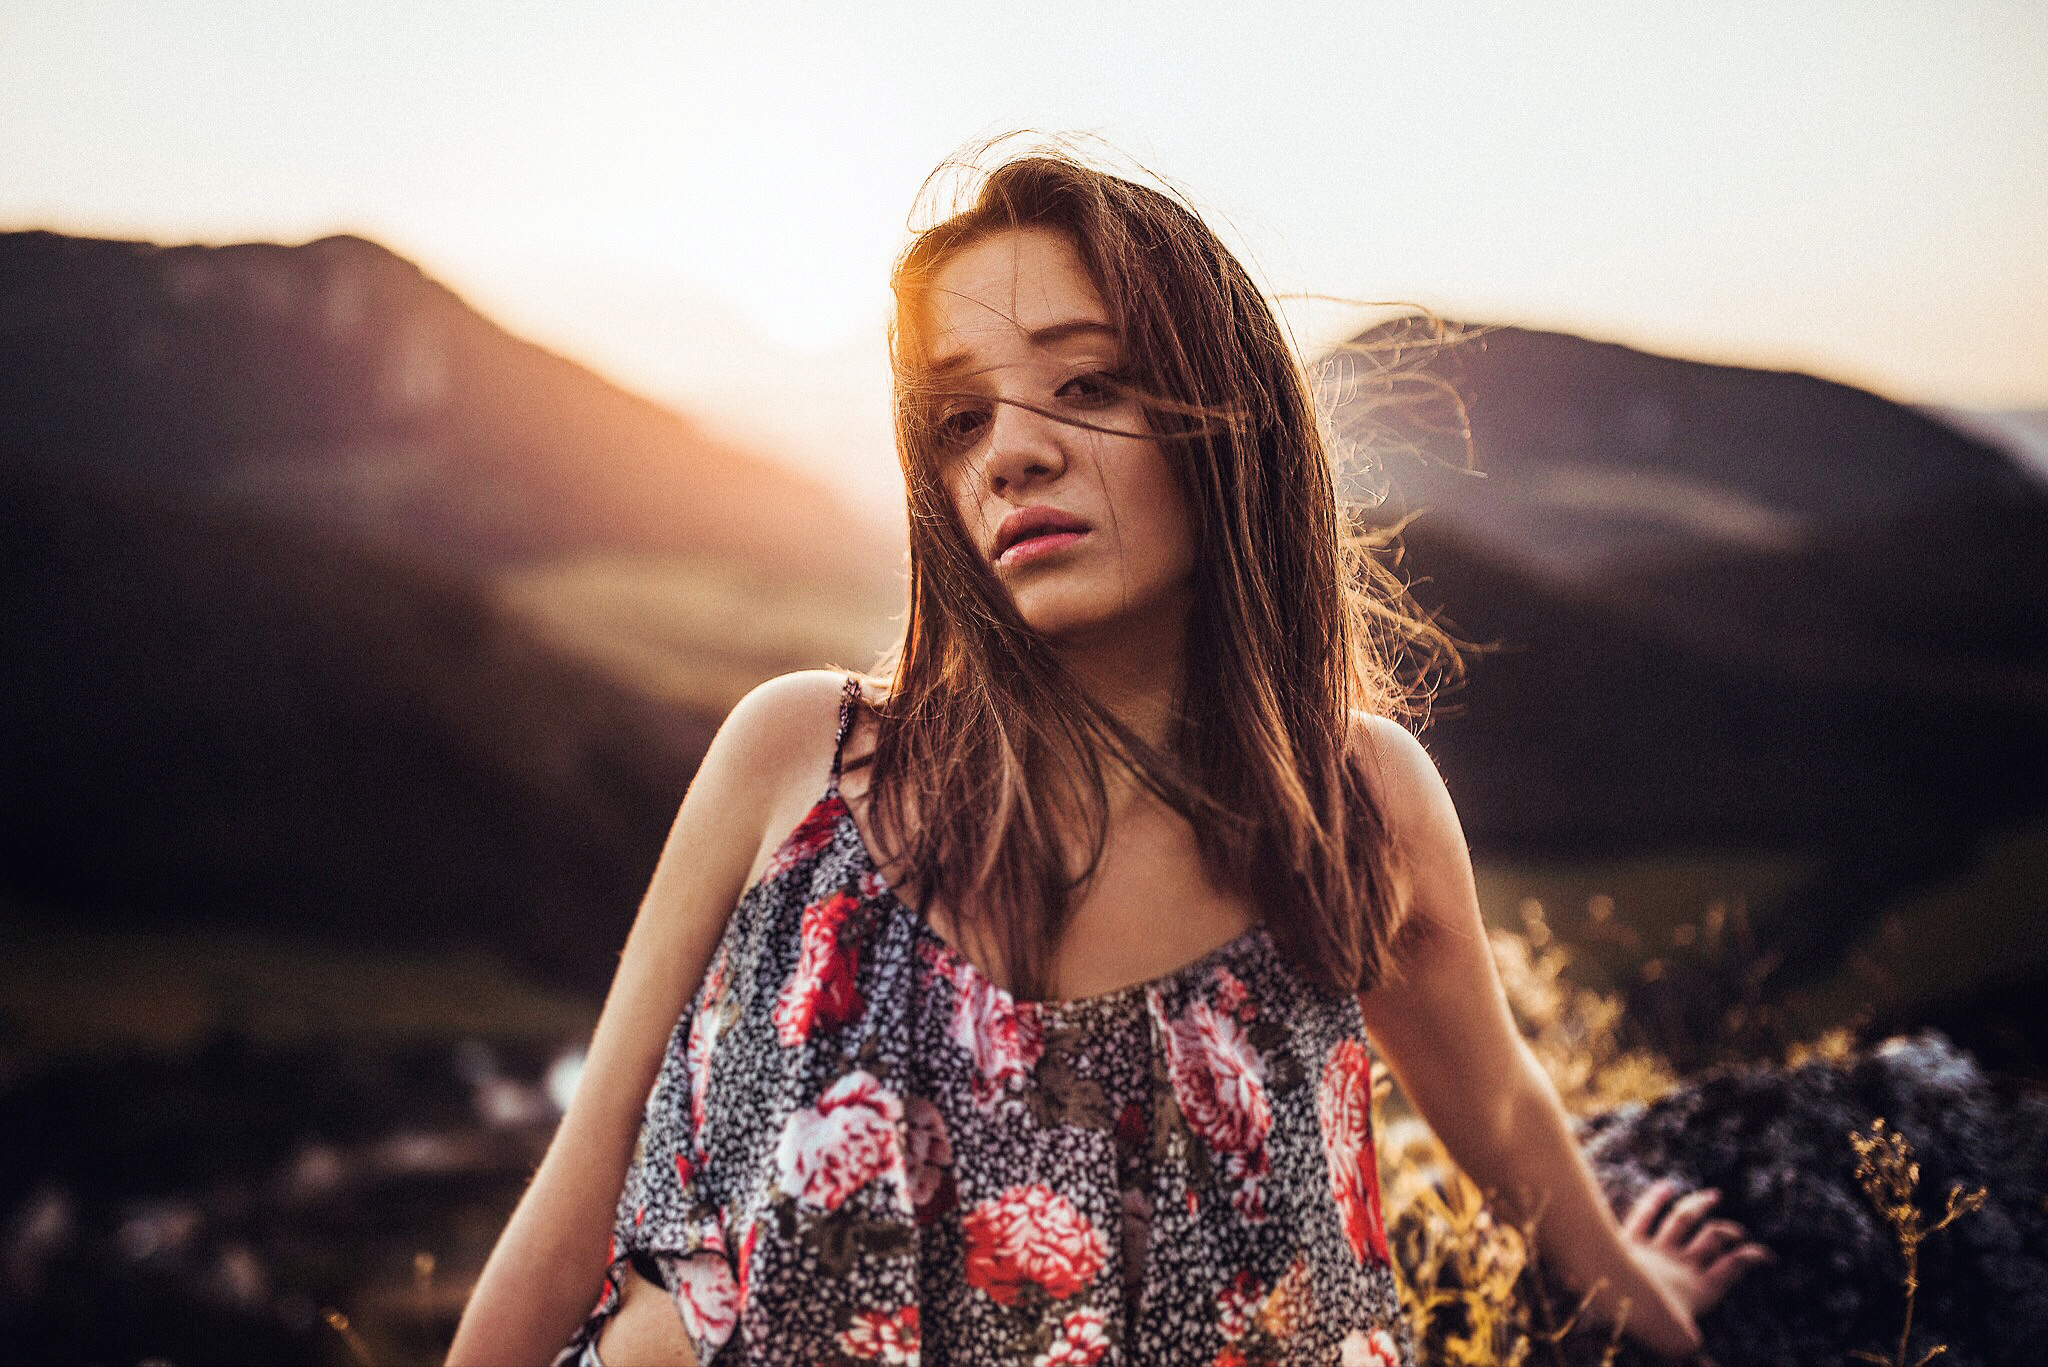 sunset, západ slnka, dievča, girl, art, emotion, feel, hair, glamour, body, sexy, nature, summer, hot, redhead, freckles, spring, gentle, fine, spontaneous, Bosmany, Považská Bystrica